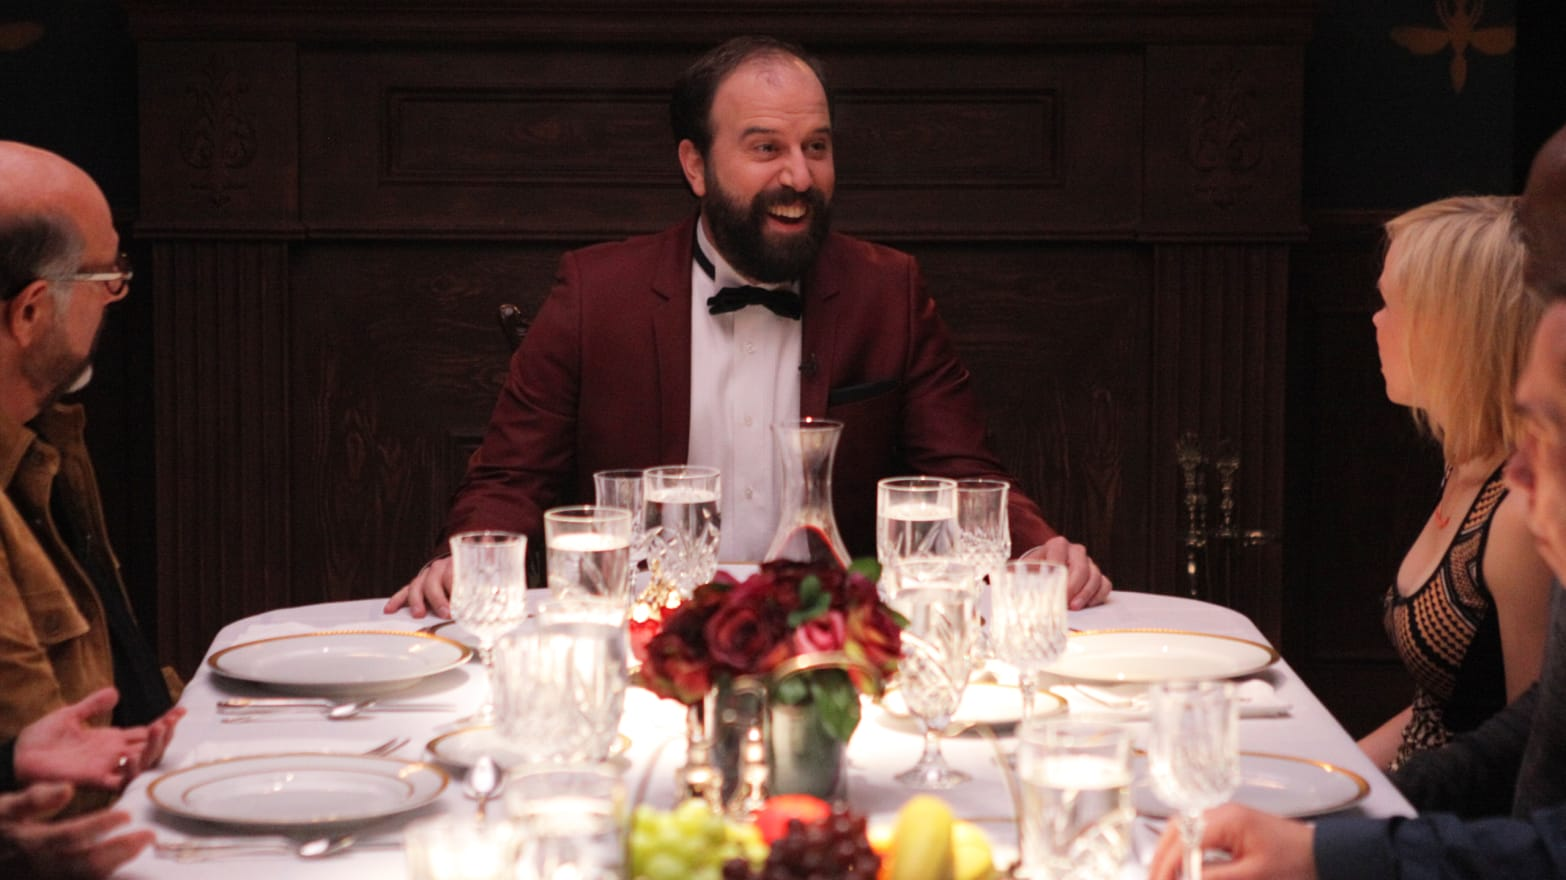 brett gelman russian languagebrett gelman russian, brett gelman russian language, brett gelman height, brett gelman high maintenance, brett gelman languages, brett gelman wiki, brett gelman and wife, brett gelman know russian, brett gelman bio, brett gelman emmy, brett gelman russia, brett gelman instagram, brett gelman stranger things, brett gelman twitter, brett gelman biography, brett gelman natal chart, brett gelman imdb